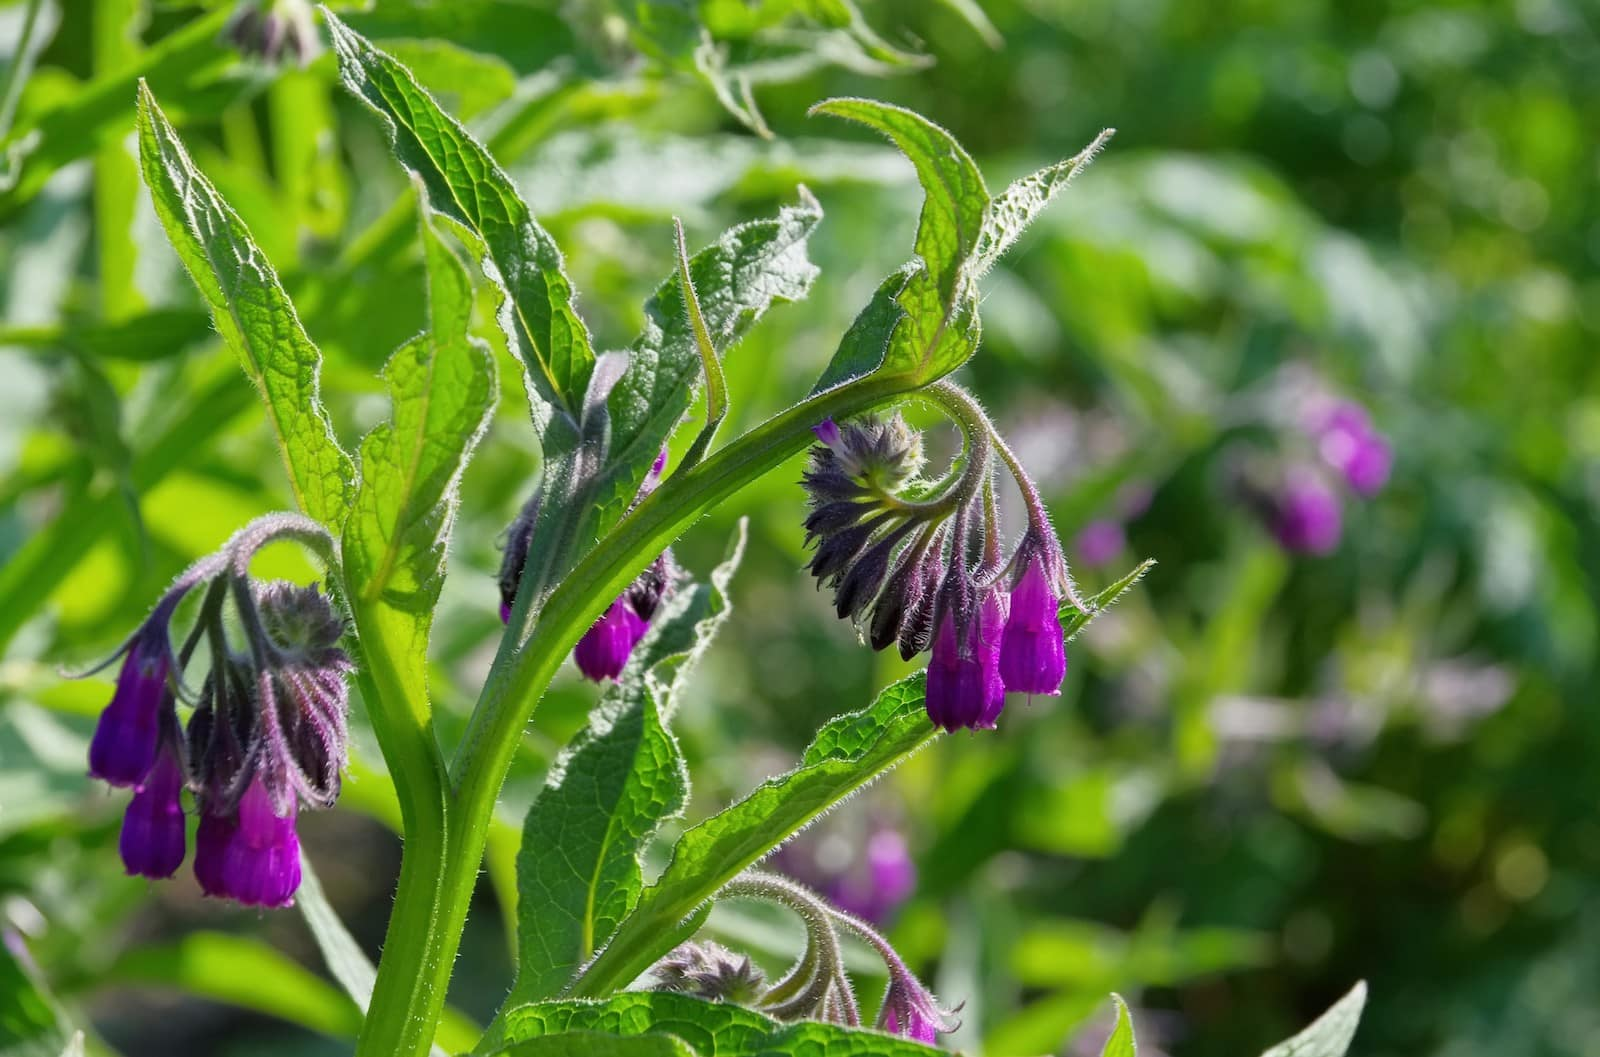 Comfrey: The Healing Herb